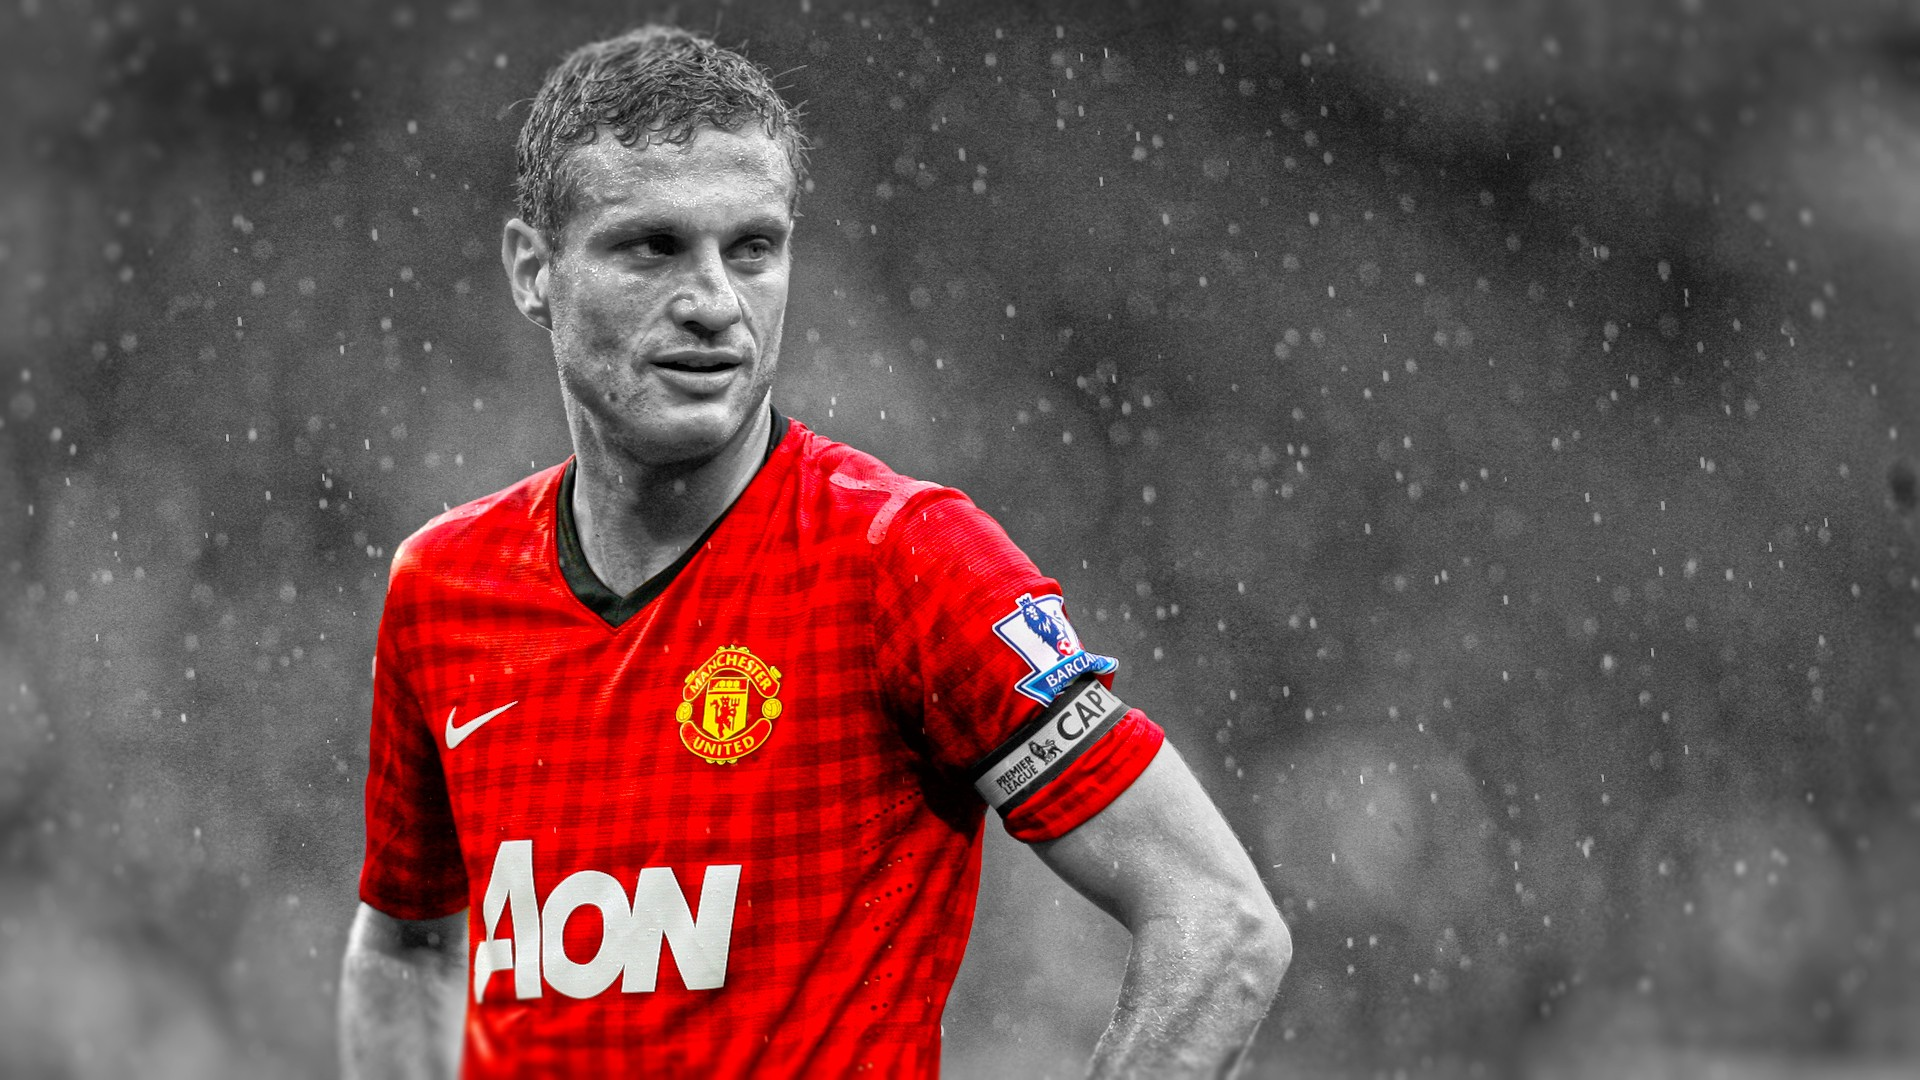 True Collors Nemanja Vidic by eduardofonseca13 on DeviantArt